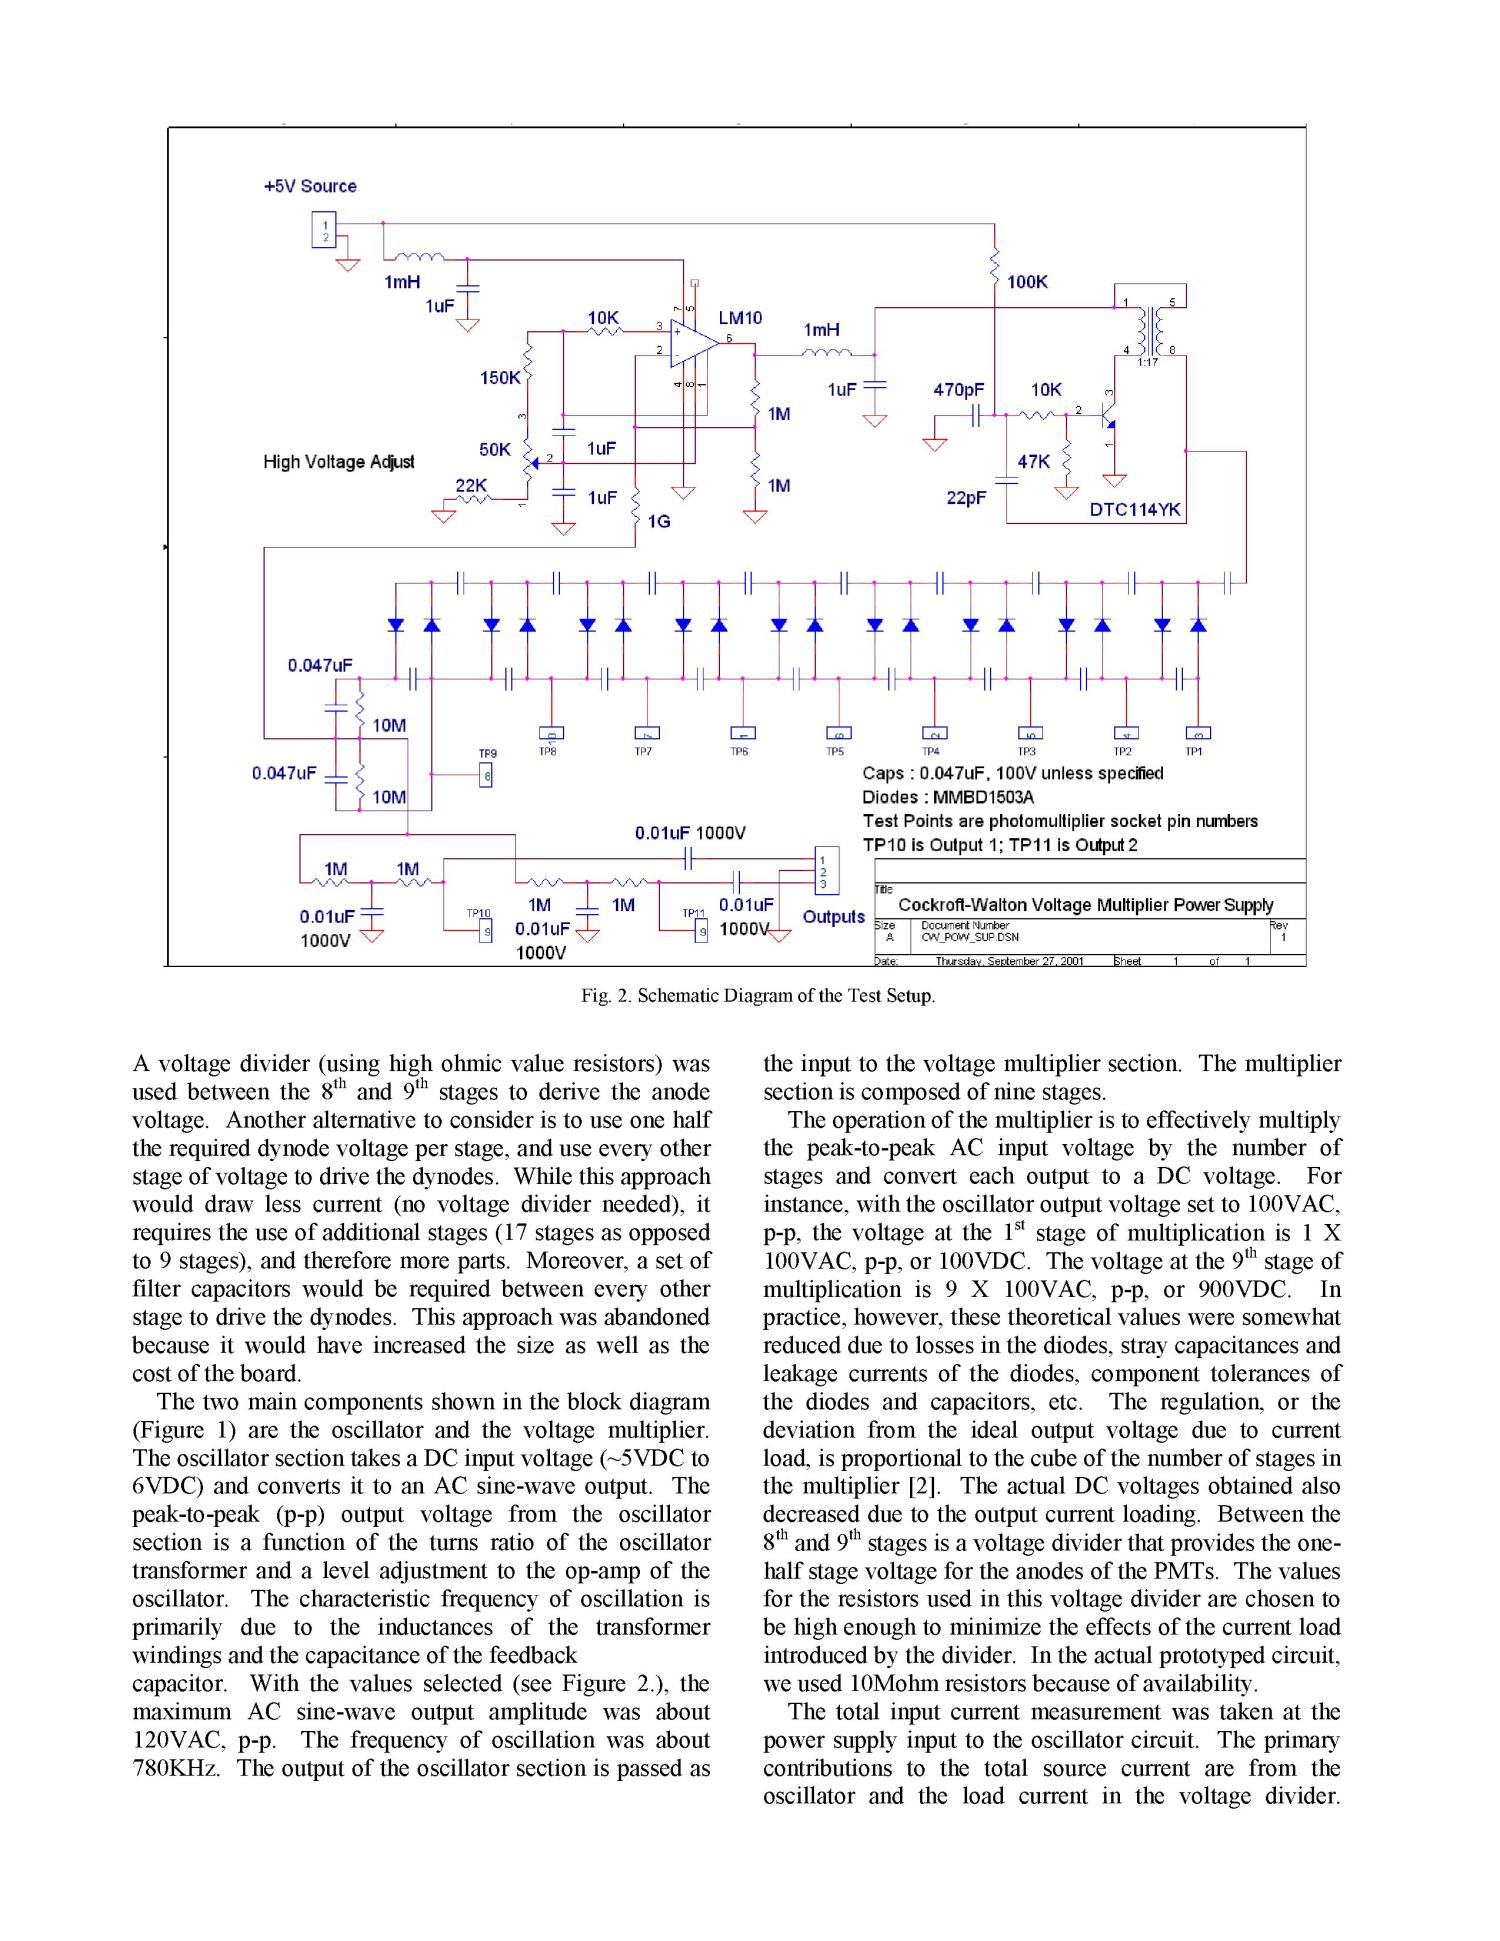 Using The Cockroft Walton Voltage Multiplier Design In Handheld With Diodes And Capacitors Devices Page 3 Of 5 Digital Library